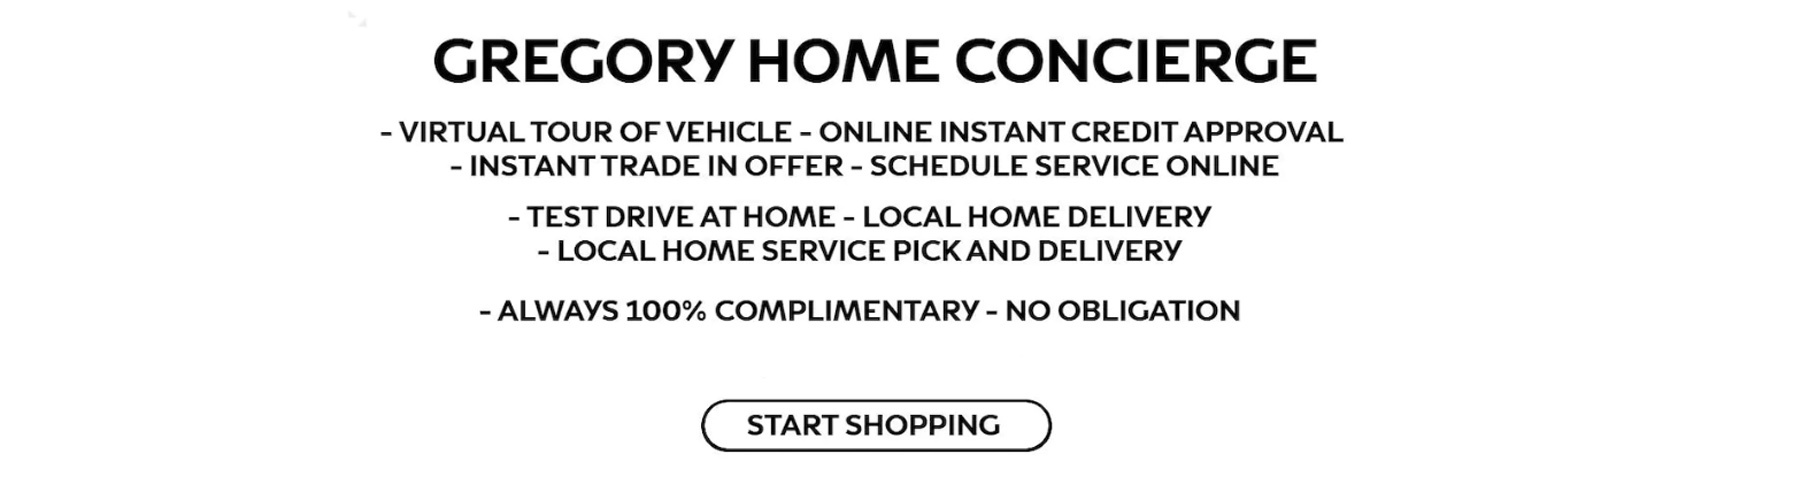 Gregory Home Concierge